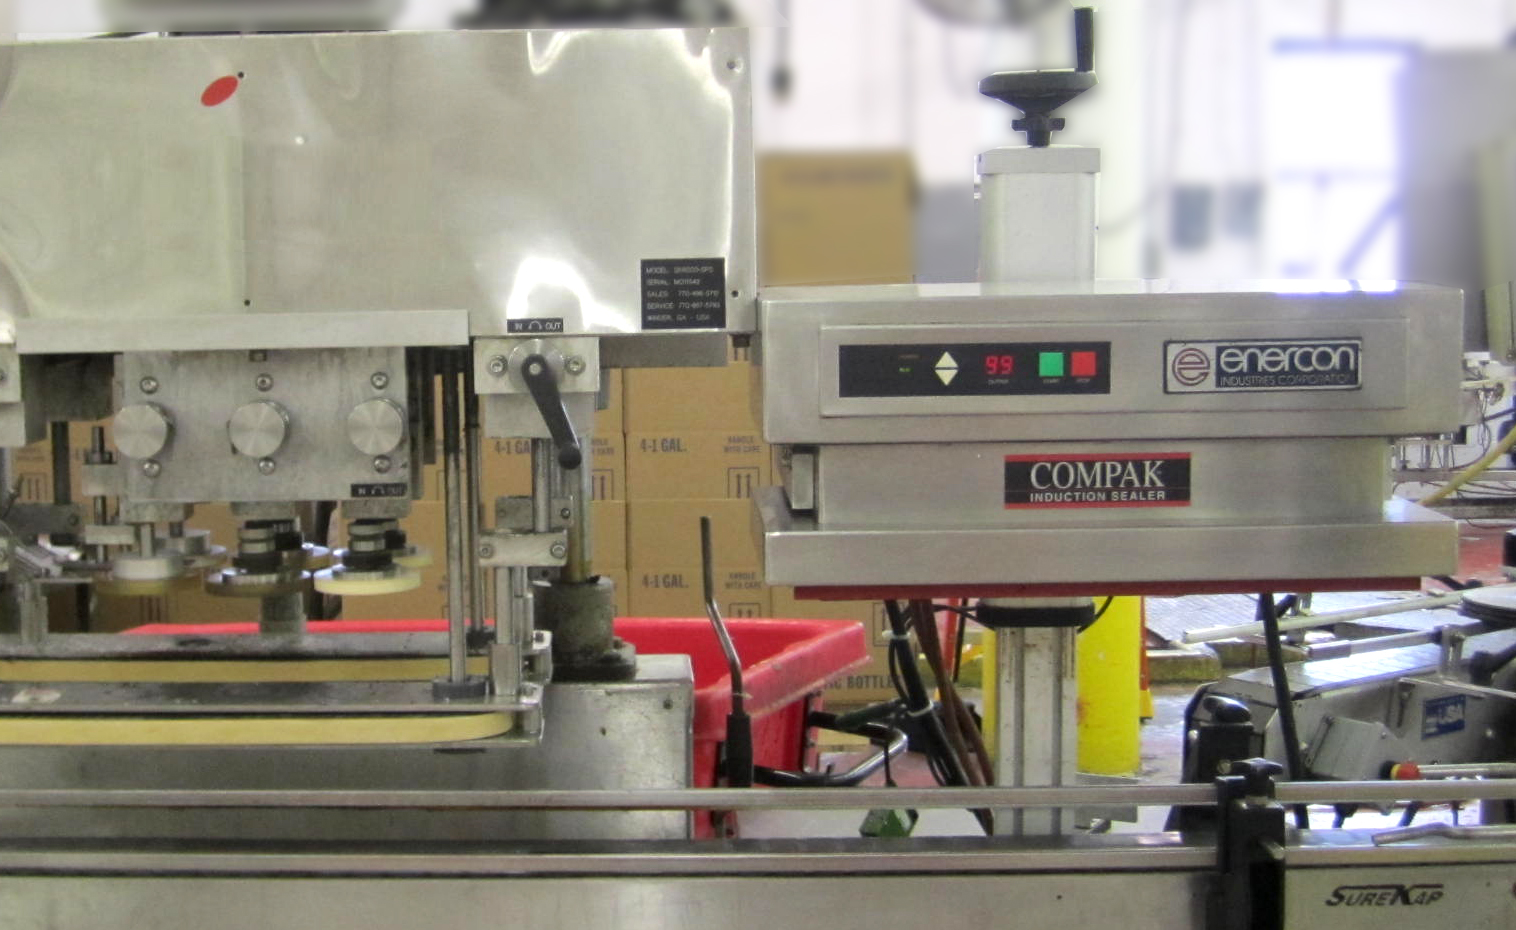 Lasco's Induction Seal Line - Enercon's Compak